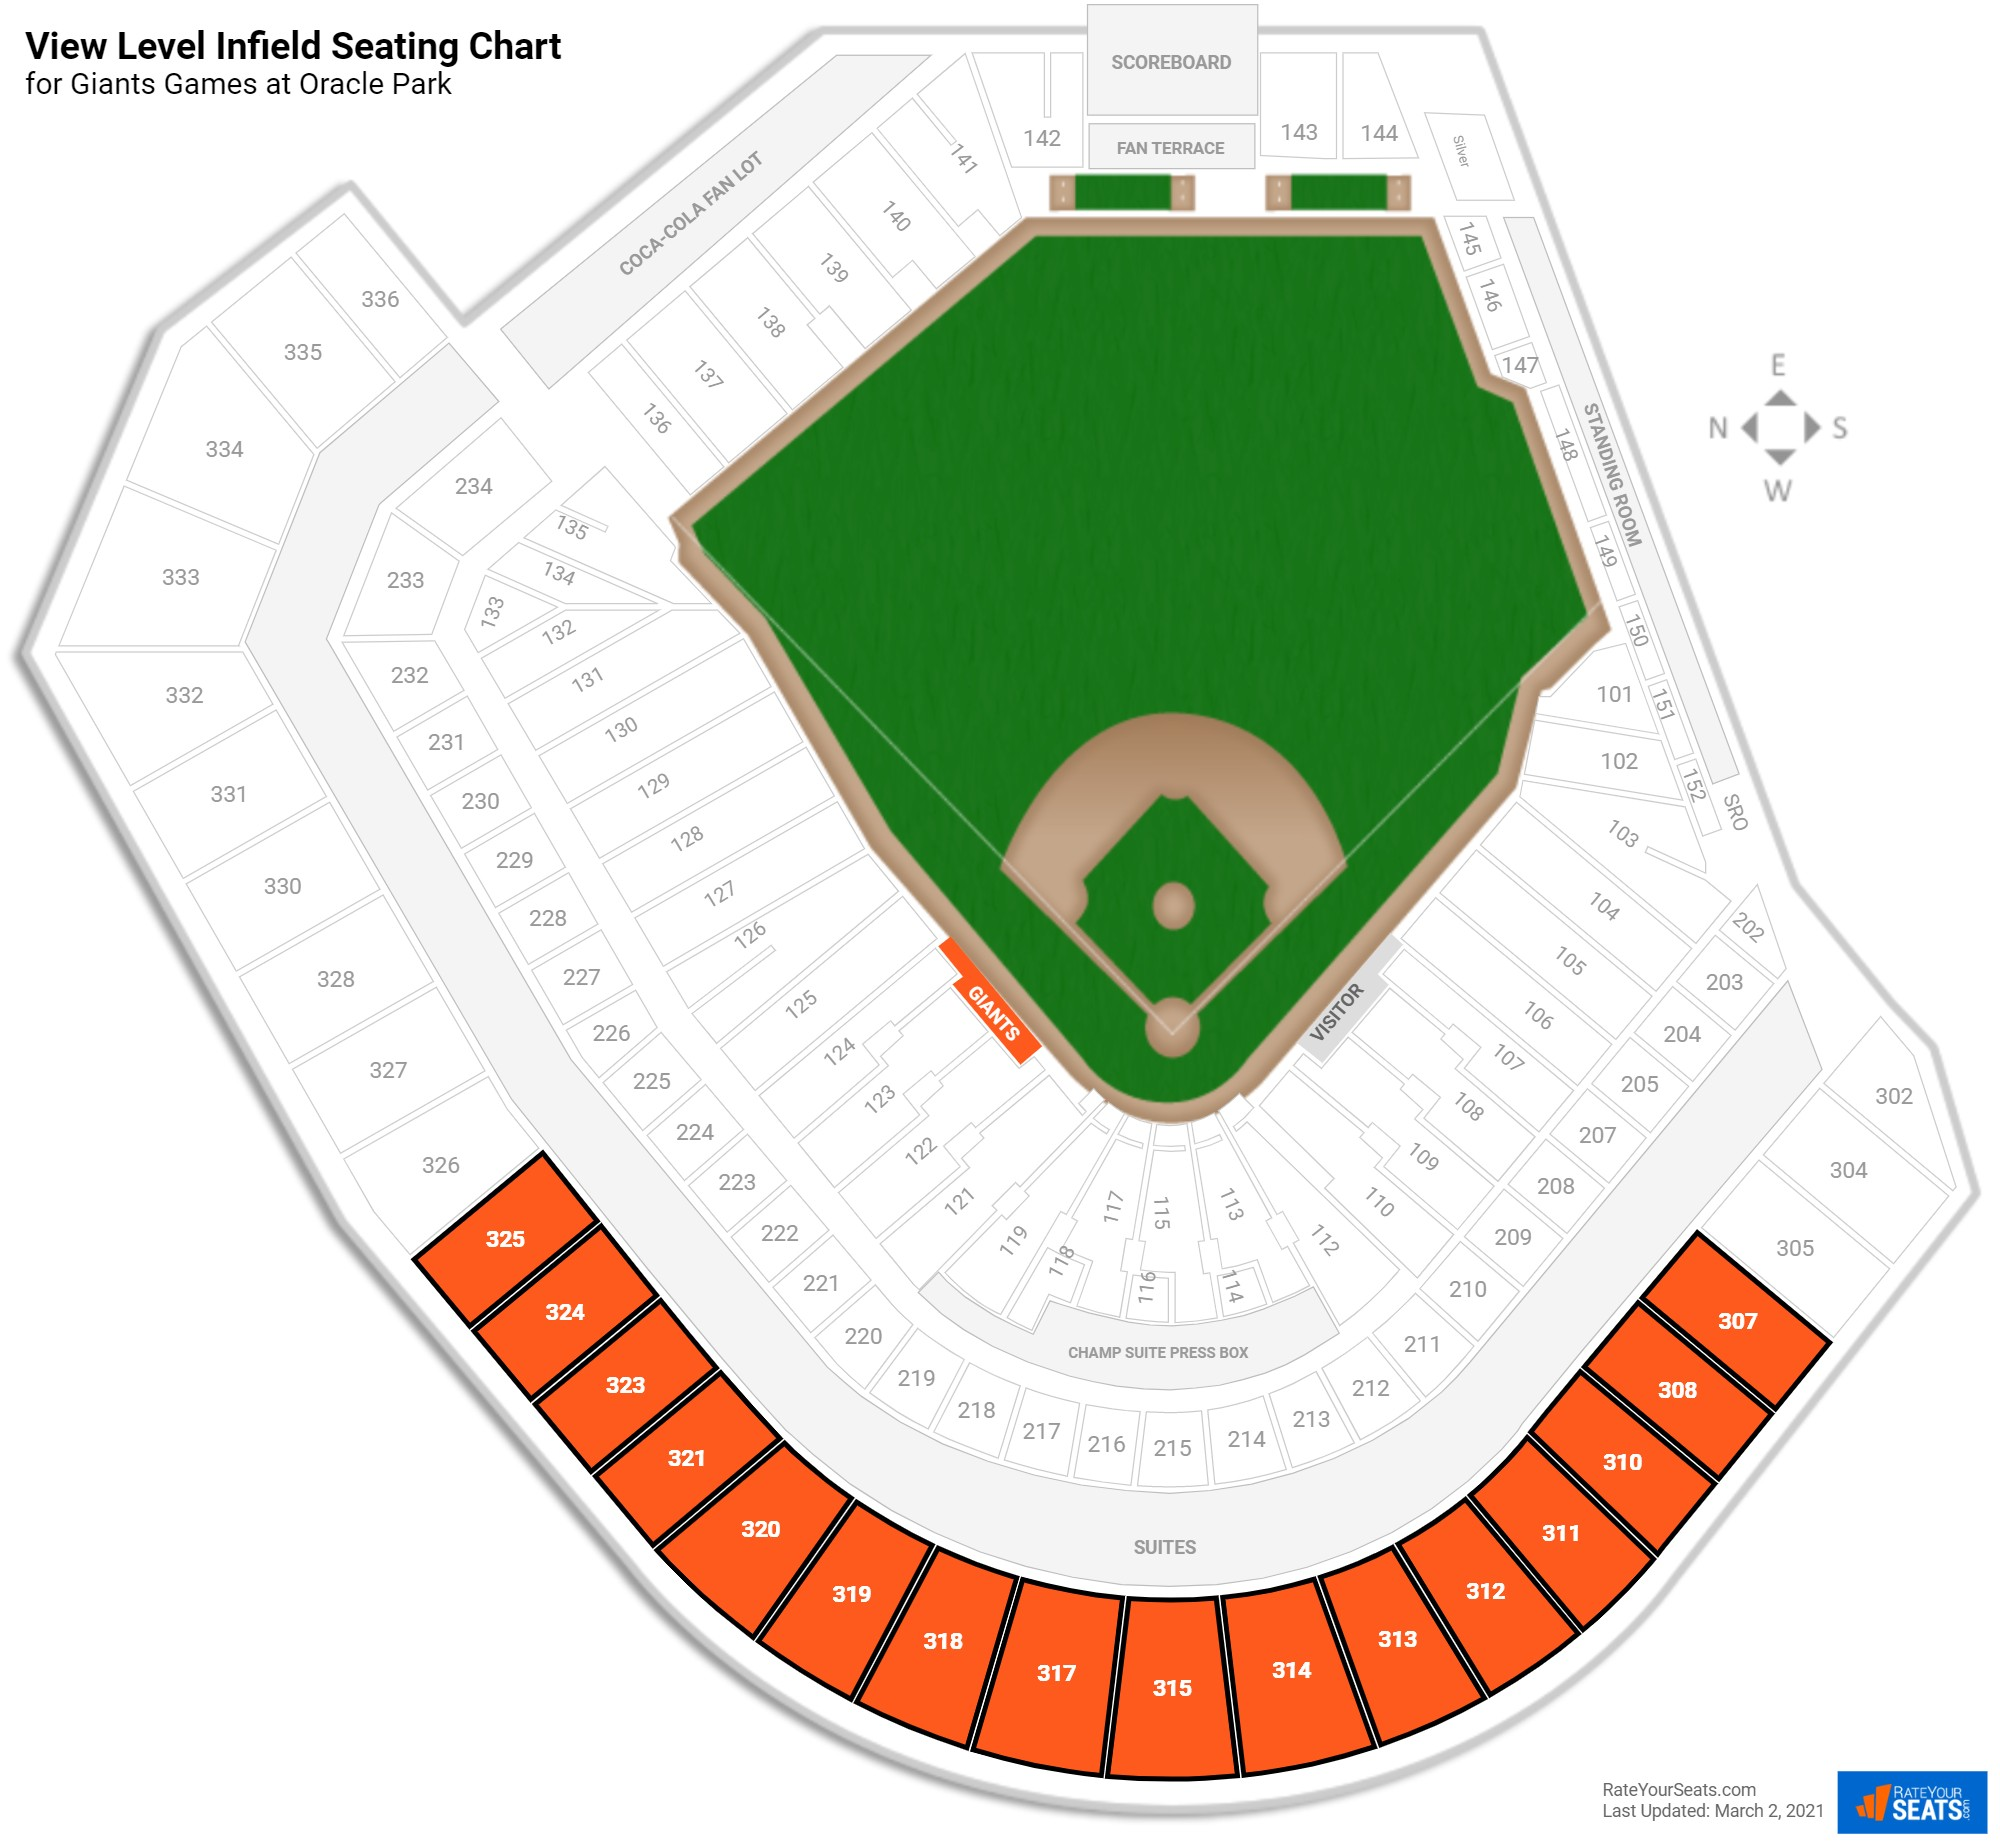 AT&T Park View Level Infield seating chart